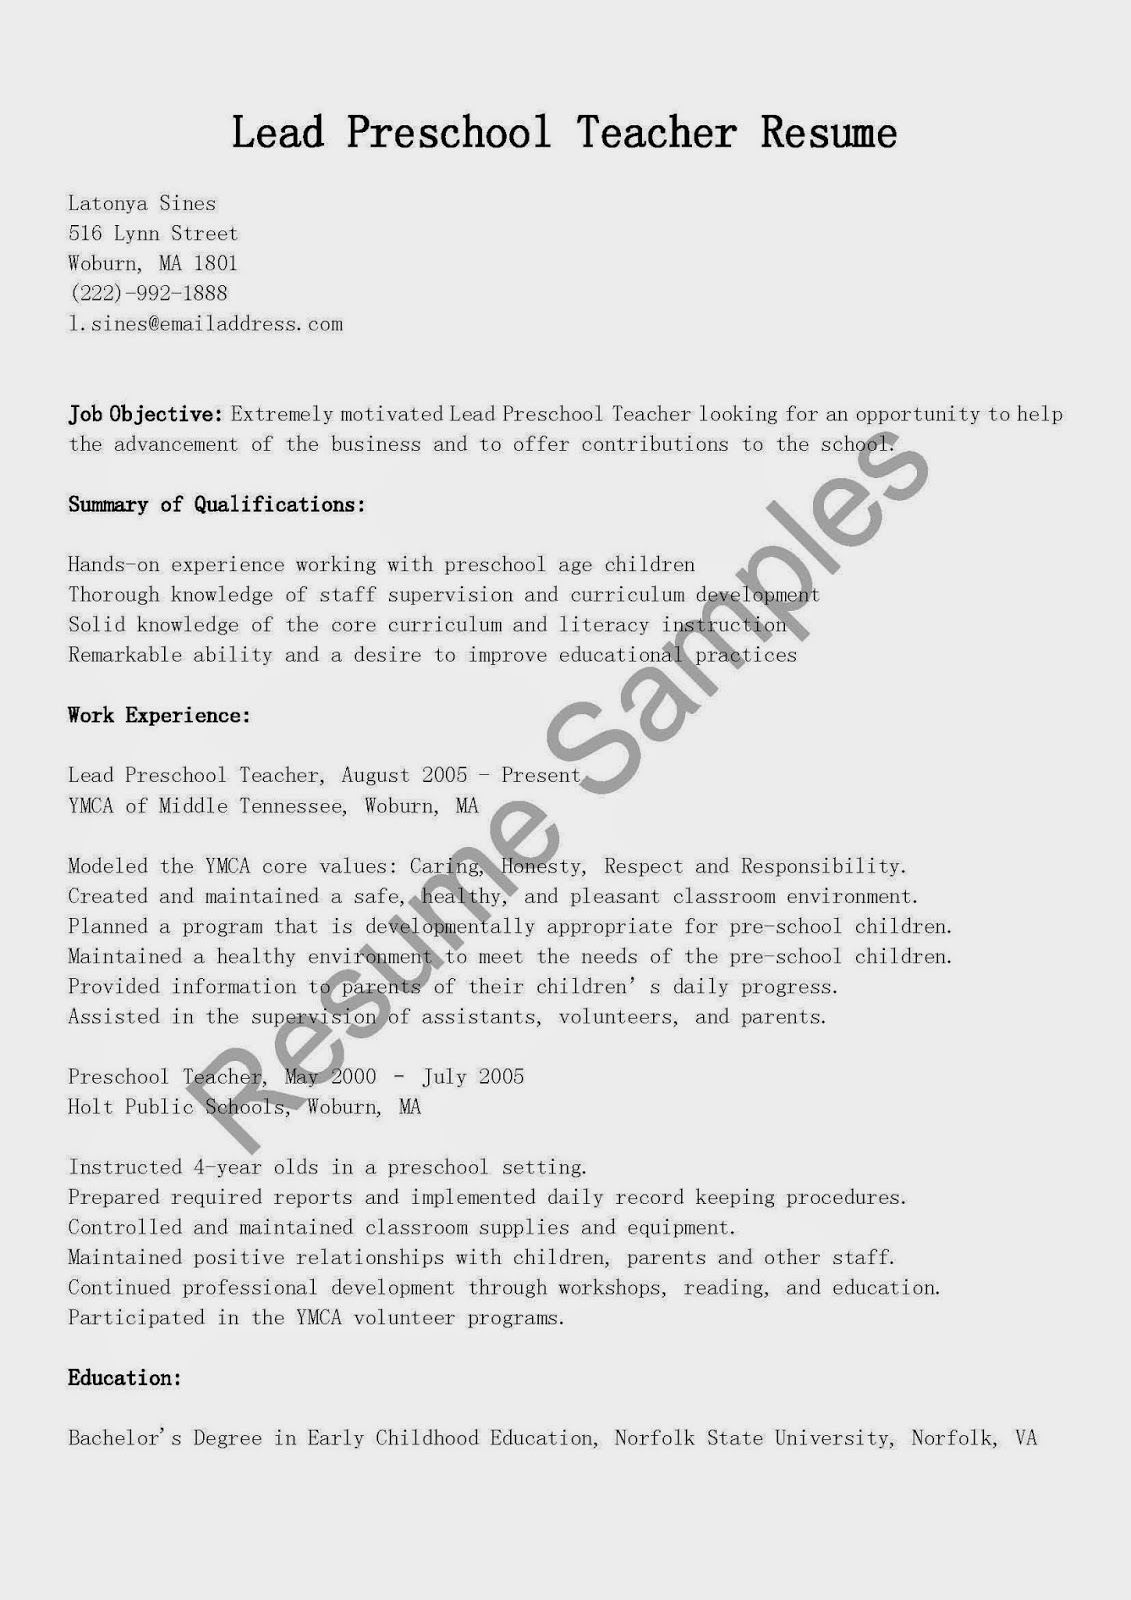 Resume Samples Lead Preschool Teacher Resume Sample